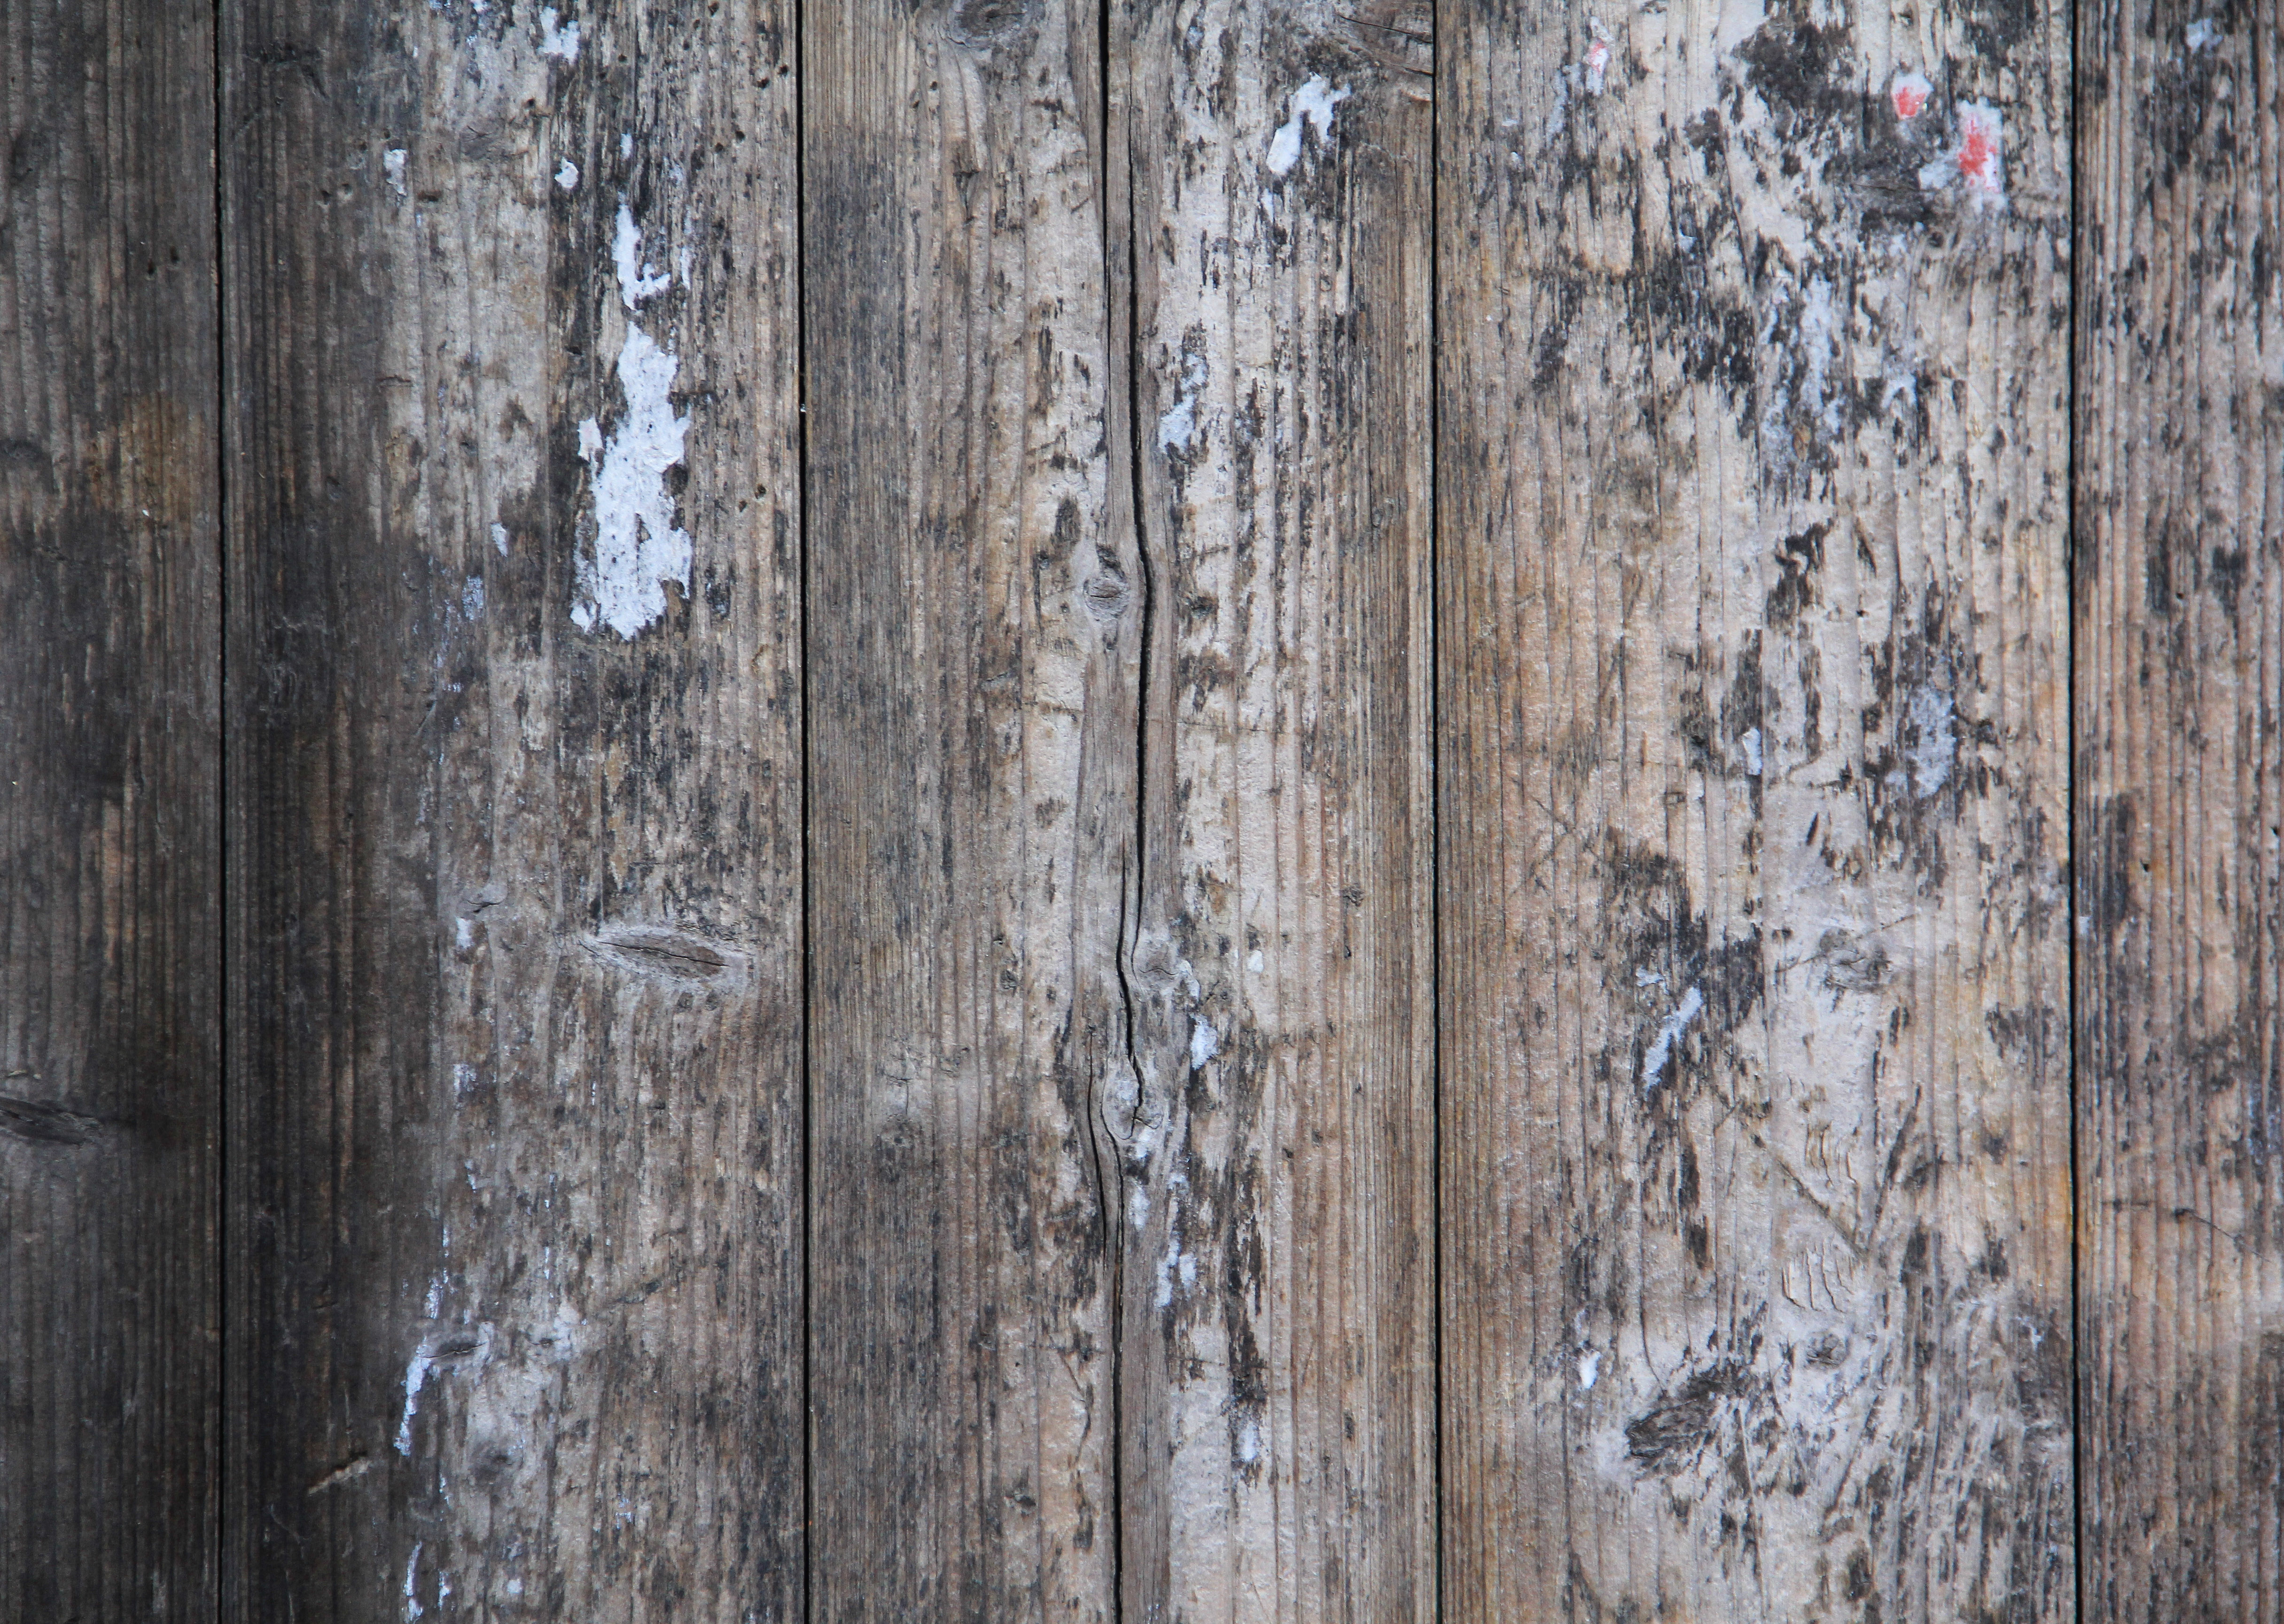 Grungy wood texture photo